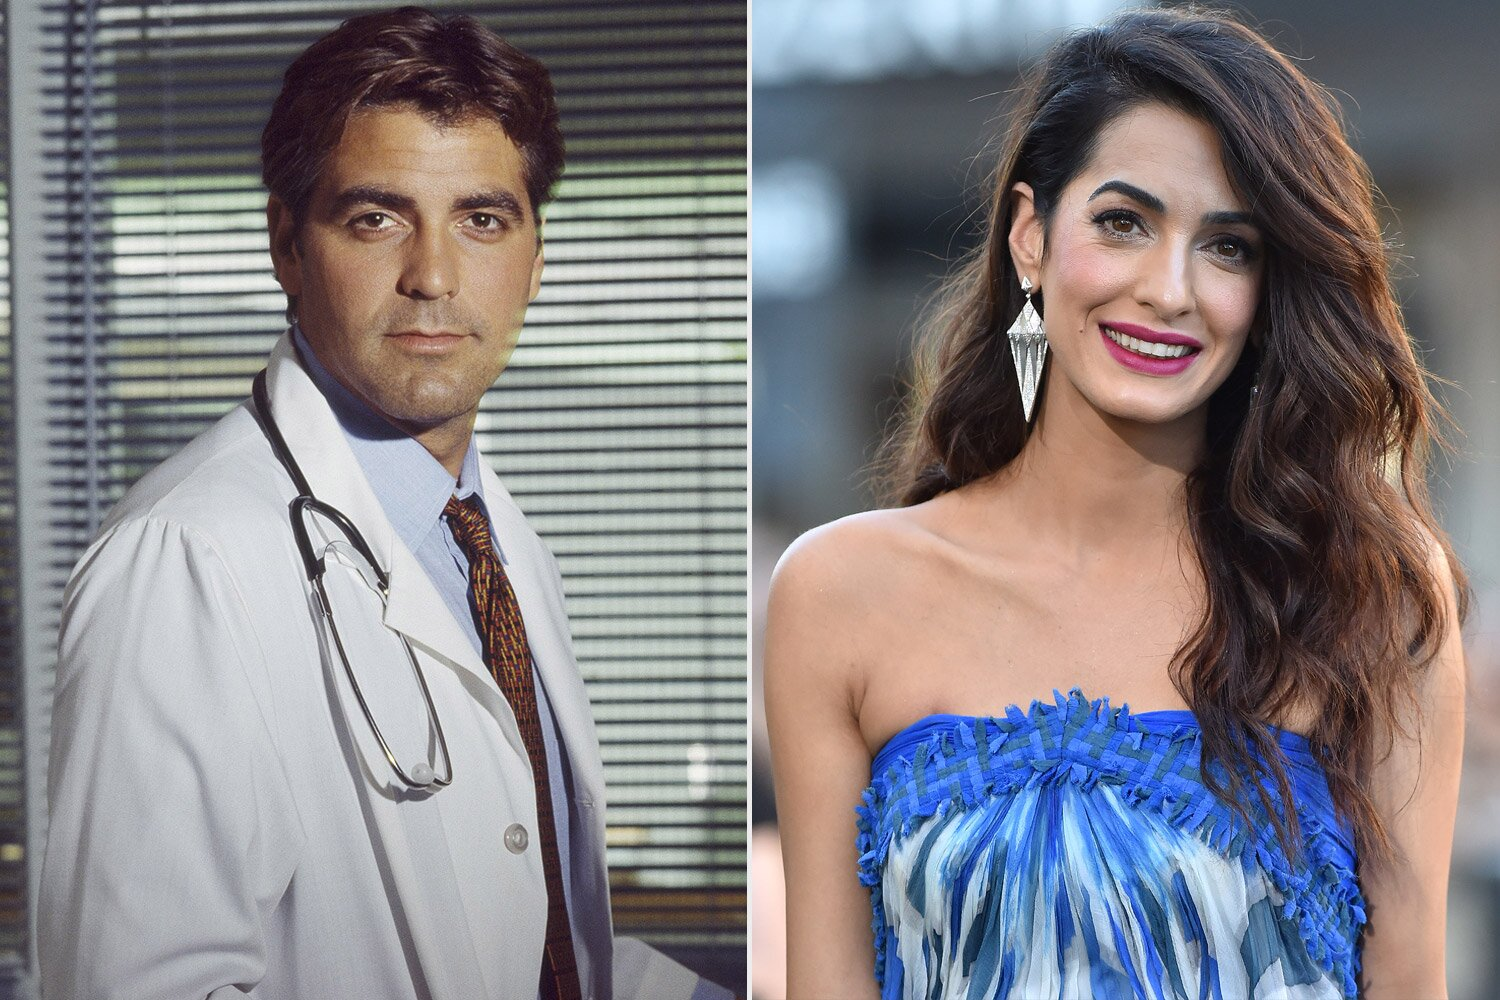 George Clooney Says Amal Is Watching 'ER' and His Character Doug Ross Is 'Getting Me in a Lot of Trouble Image?url=https%3A%2F%2Fstatic.onecms.io%2Fwp-content%2Fuploads%2Fsites%2F20%2F2021%2F03%2F09%2Fgeorge-amal-clooney